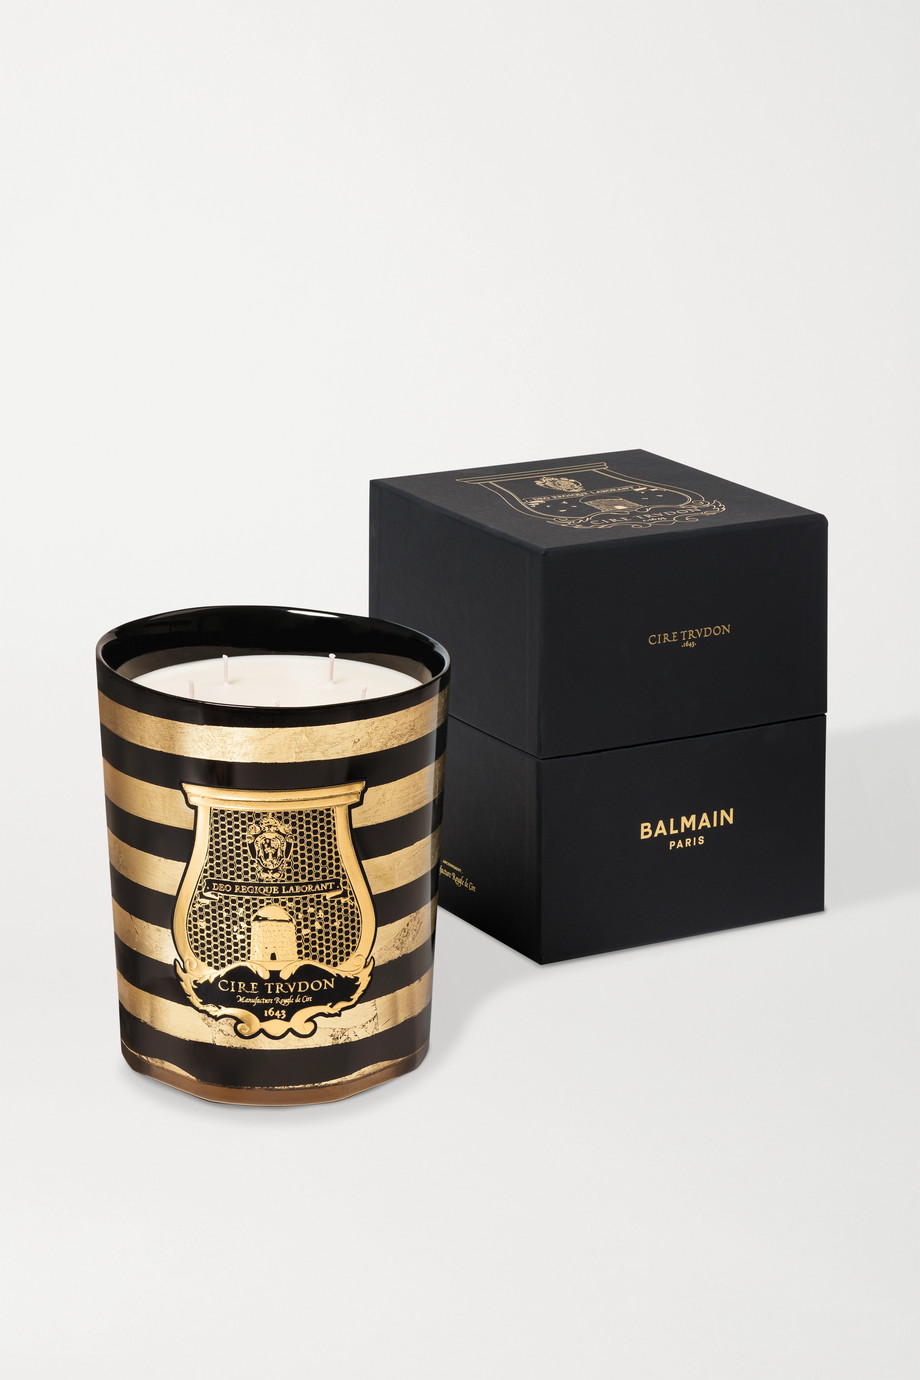 Cire Trudon + Balmain scented candle, 270g